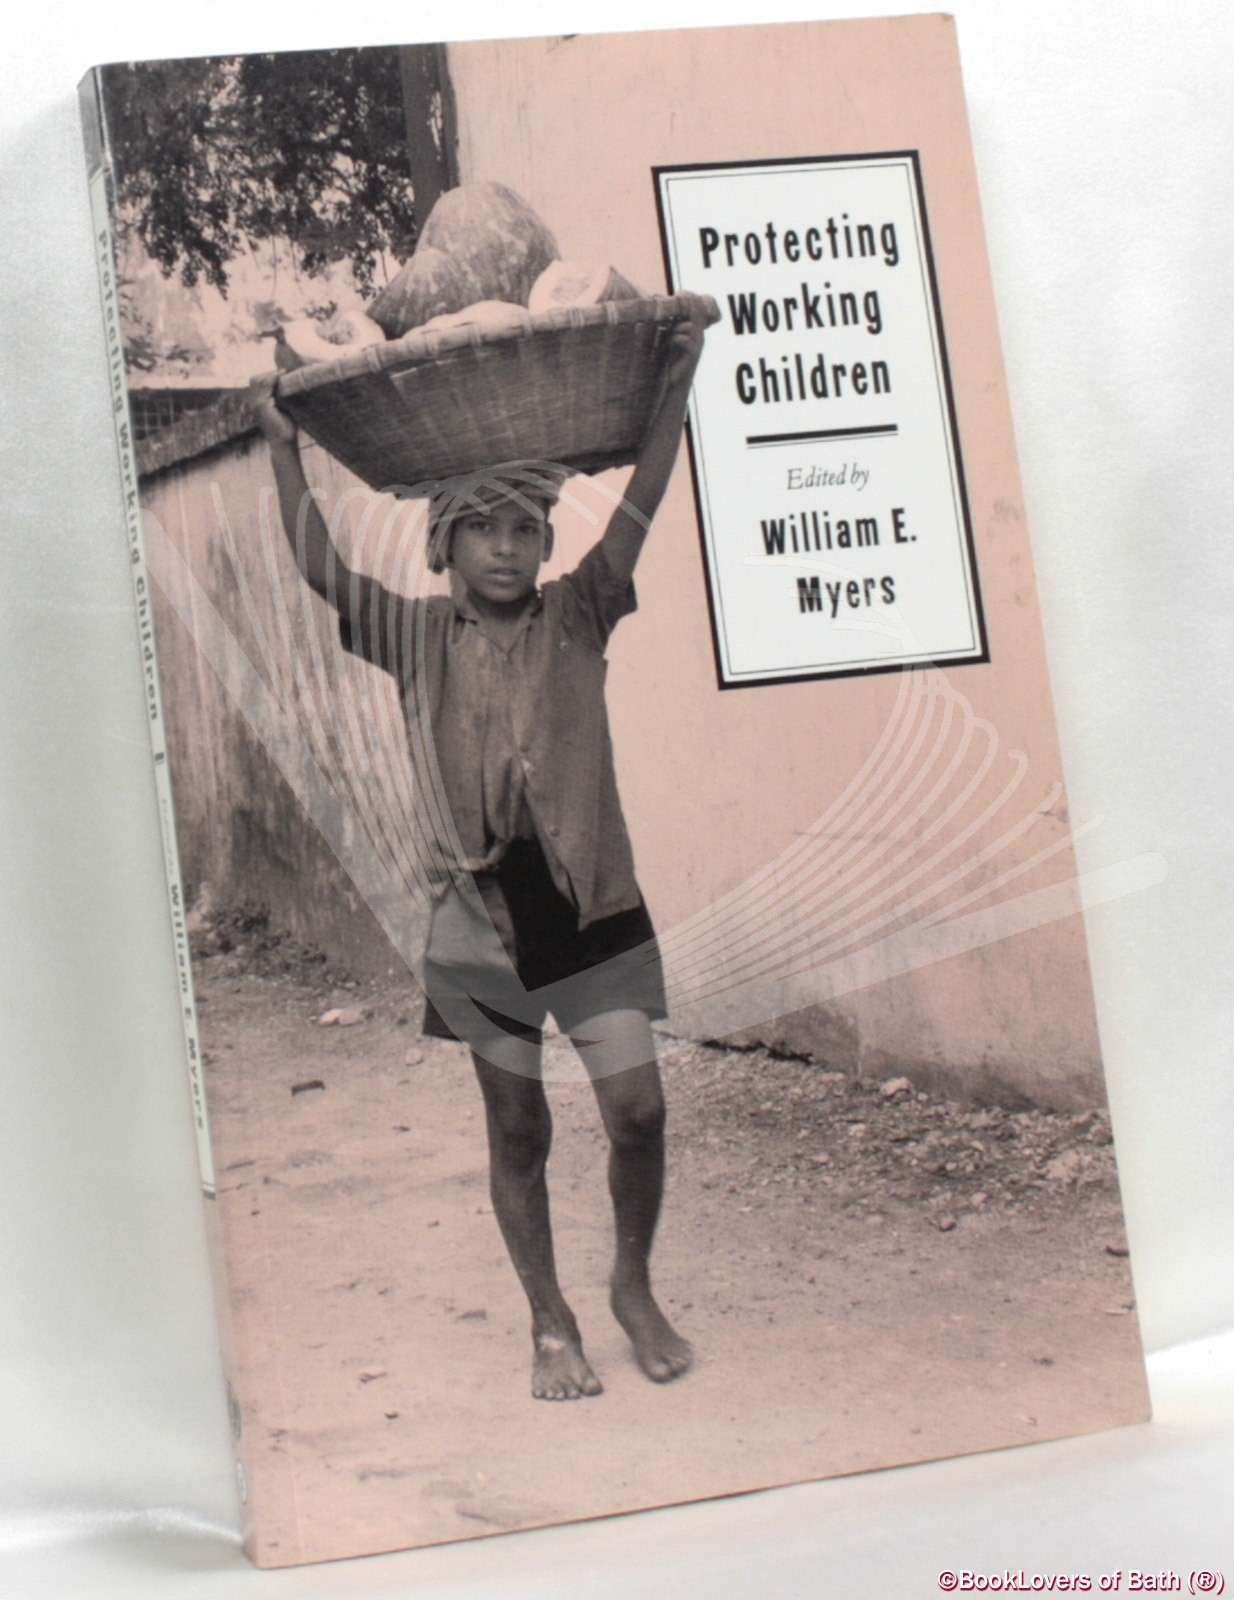 Protecting Working Children - Edited by William E. Myers